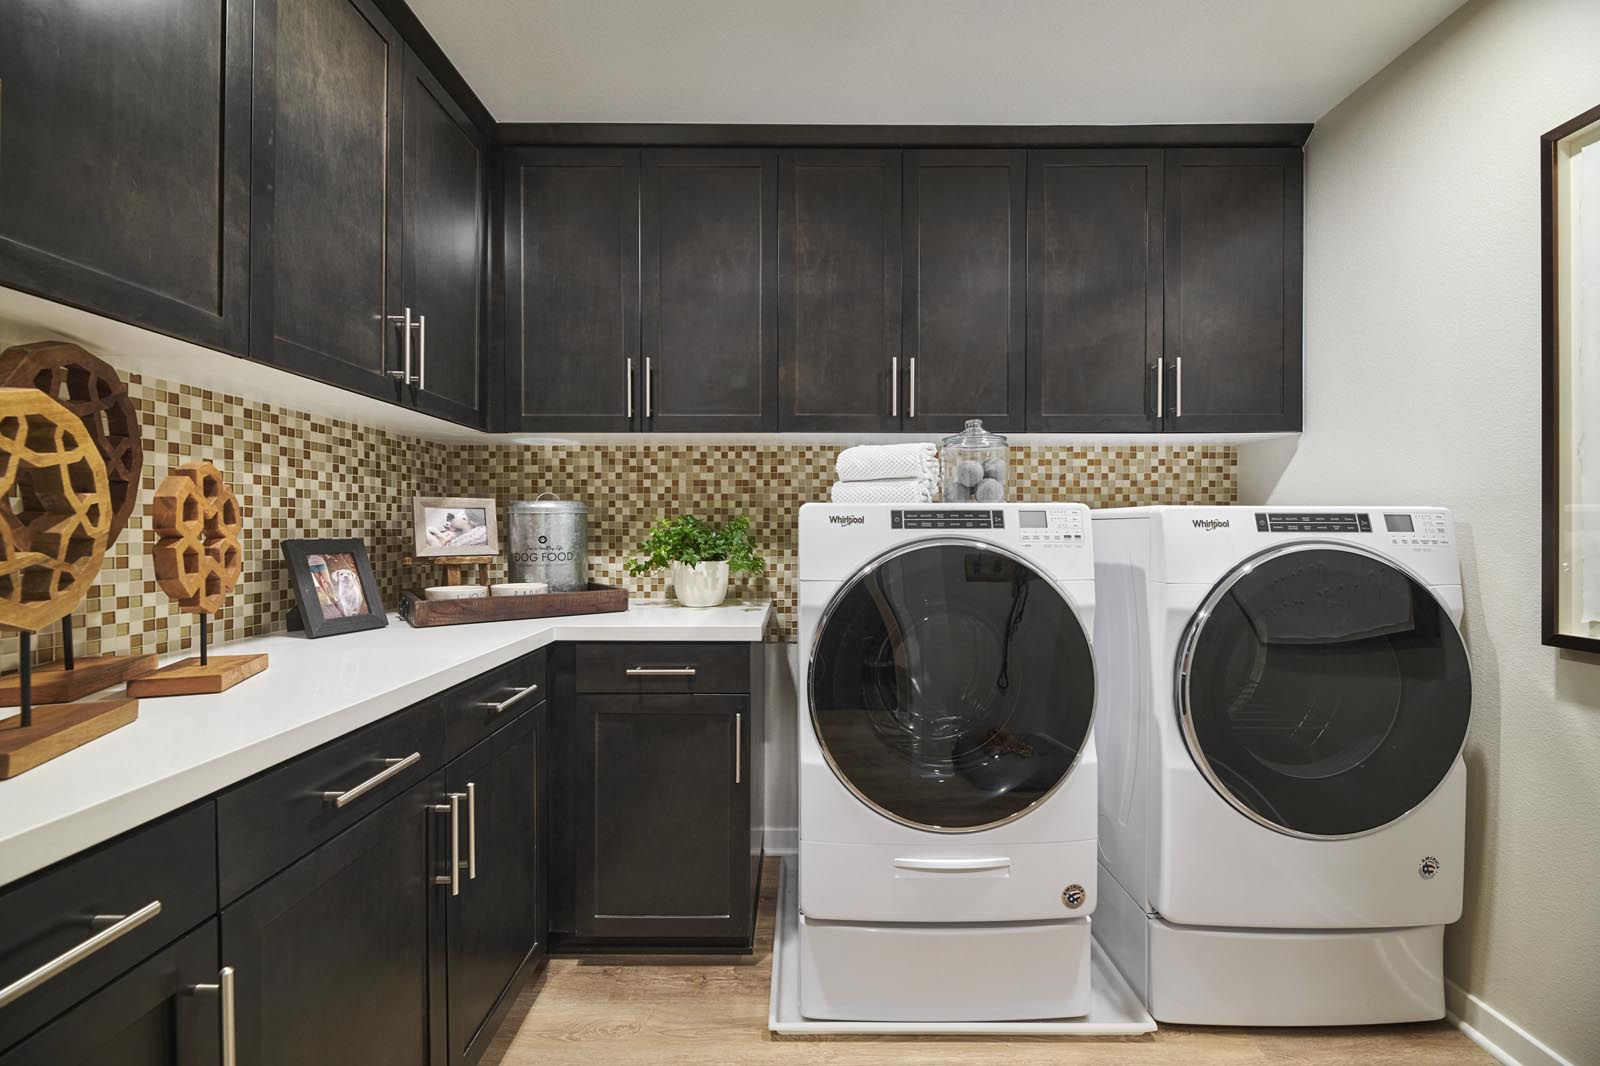 Laundry Room | Residence 5 | Aspire | New Homes in Rancho Cucamonga, CA | Van Daele Homes